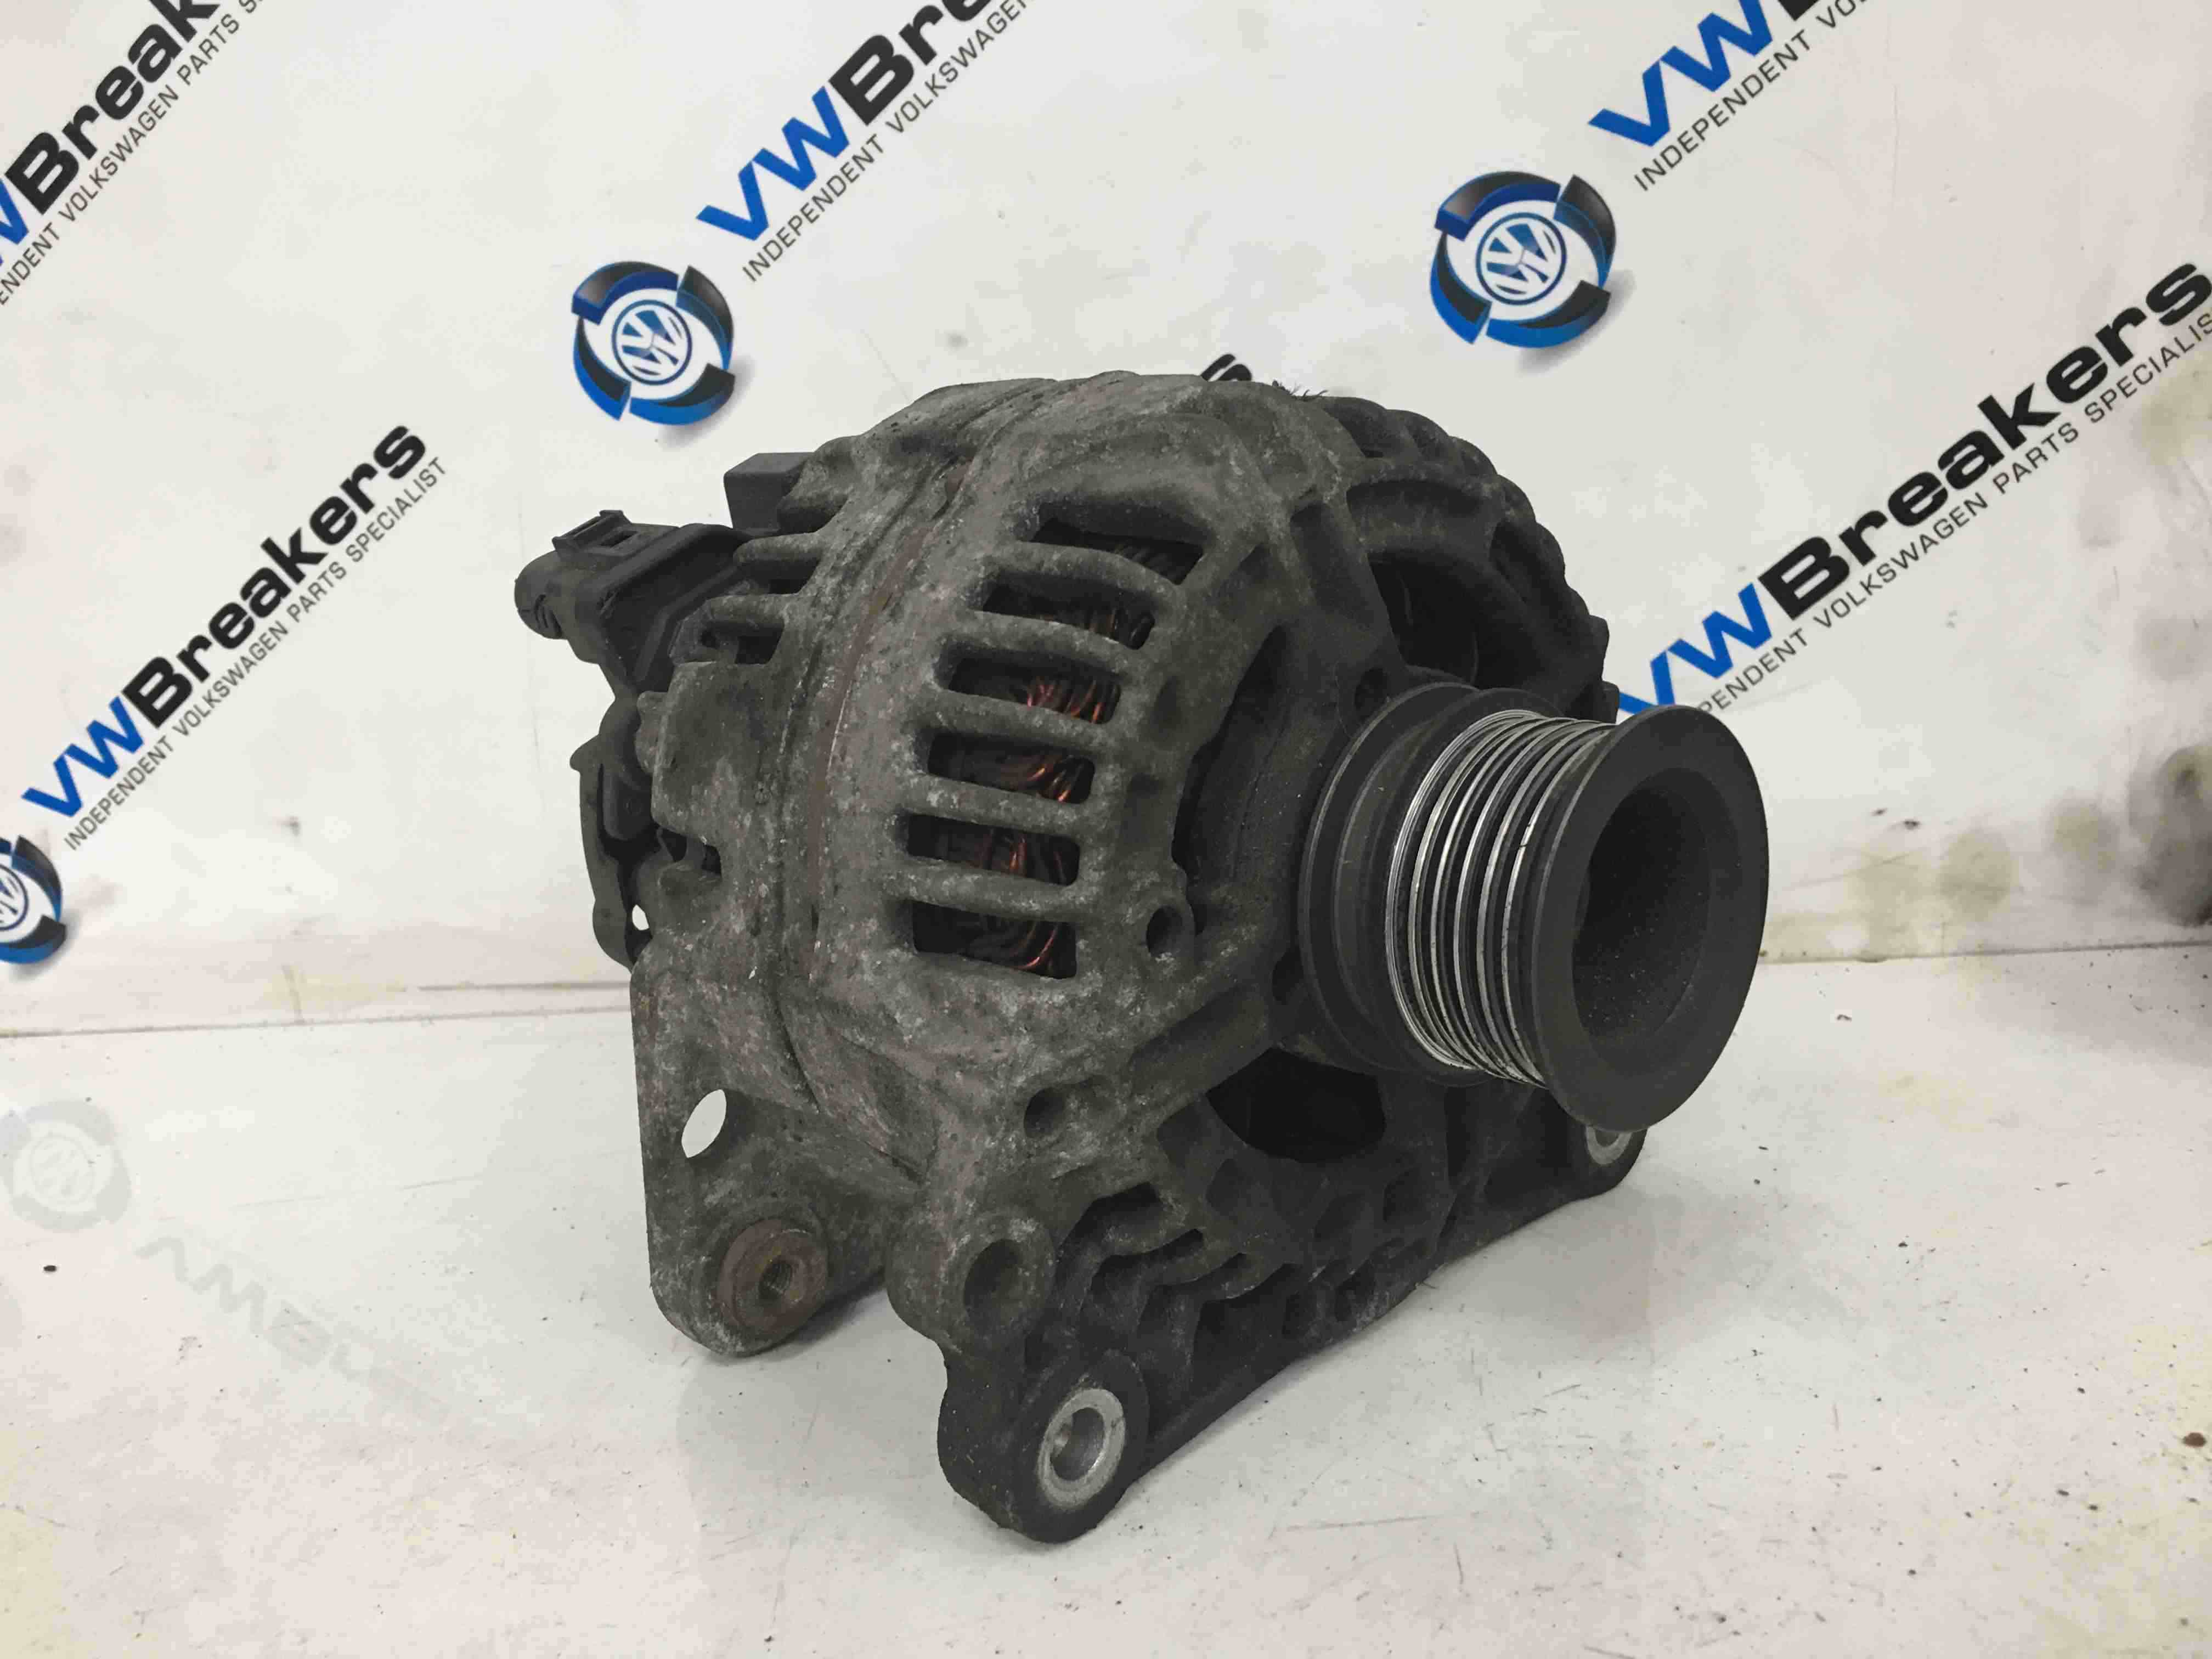 Volkswagen Polo 6R 2009-2014 1.4 16v Alternator CGGB 036903024J